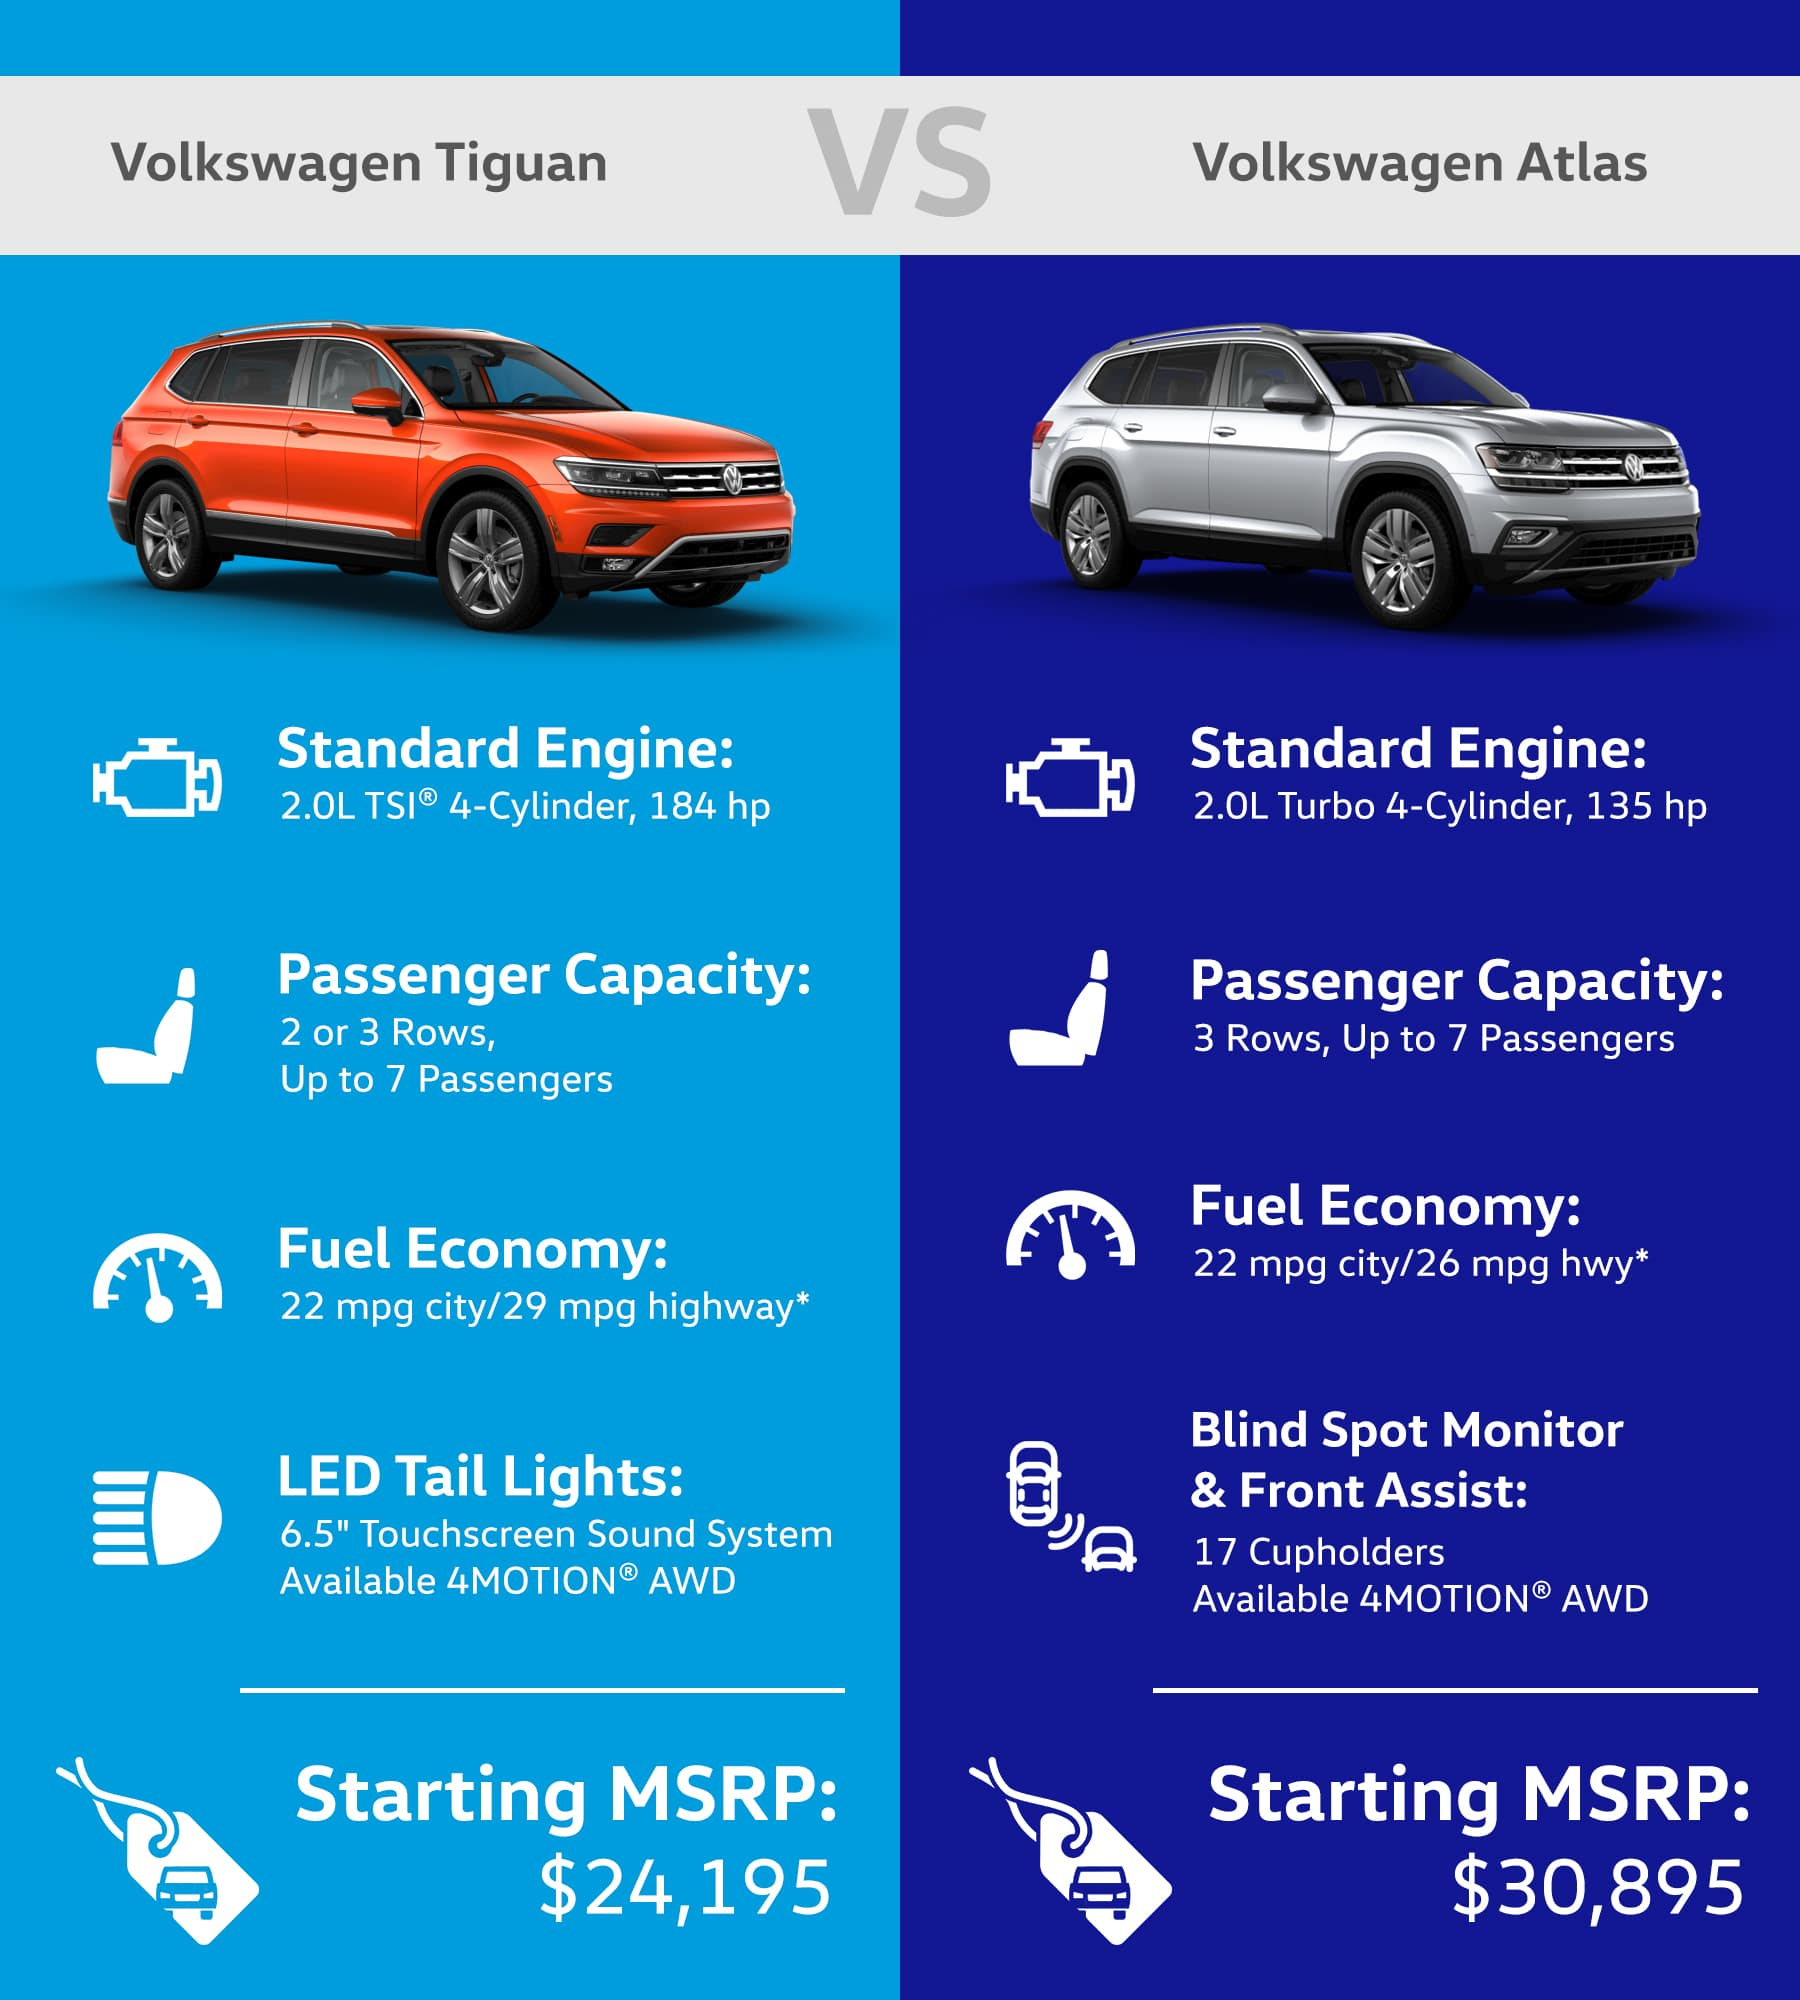 Volkswagen Tiguan vs. Volkswagen Atlas Comparison